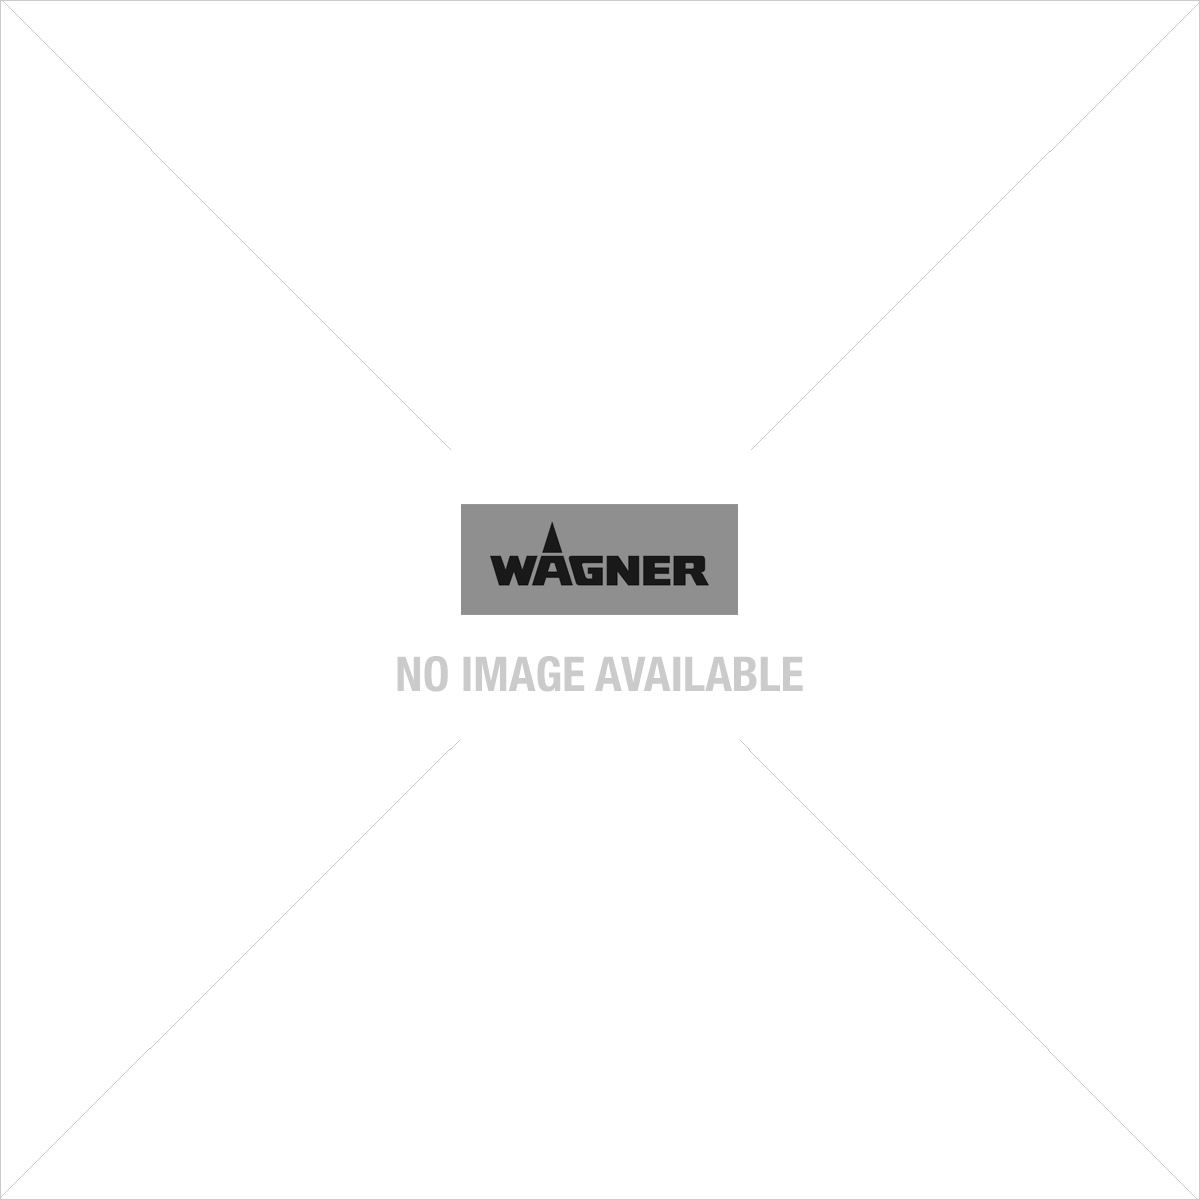 Wagner airless gele slang 7,5 m Wagner project pro 117